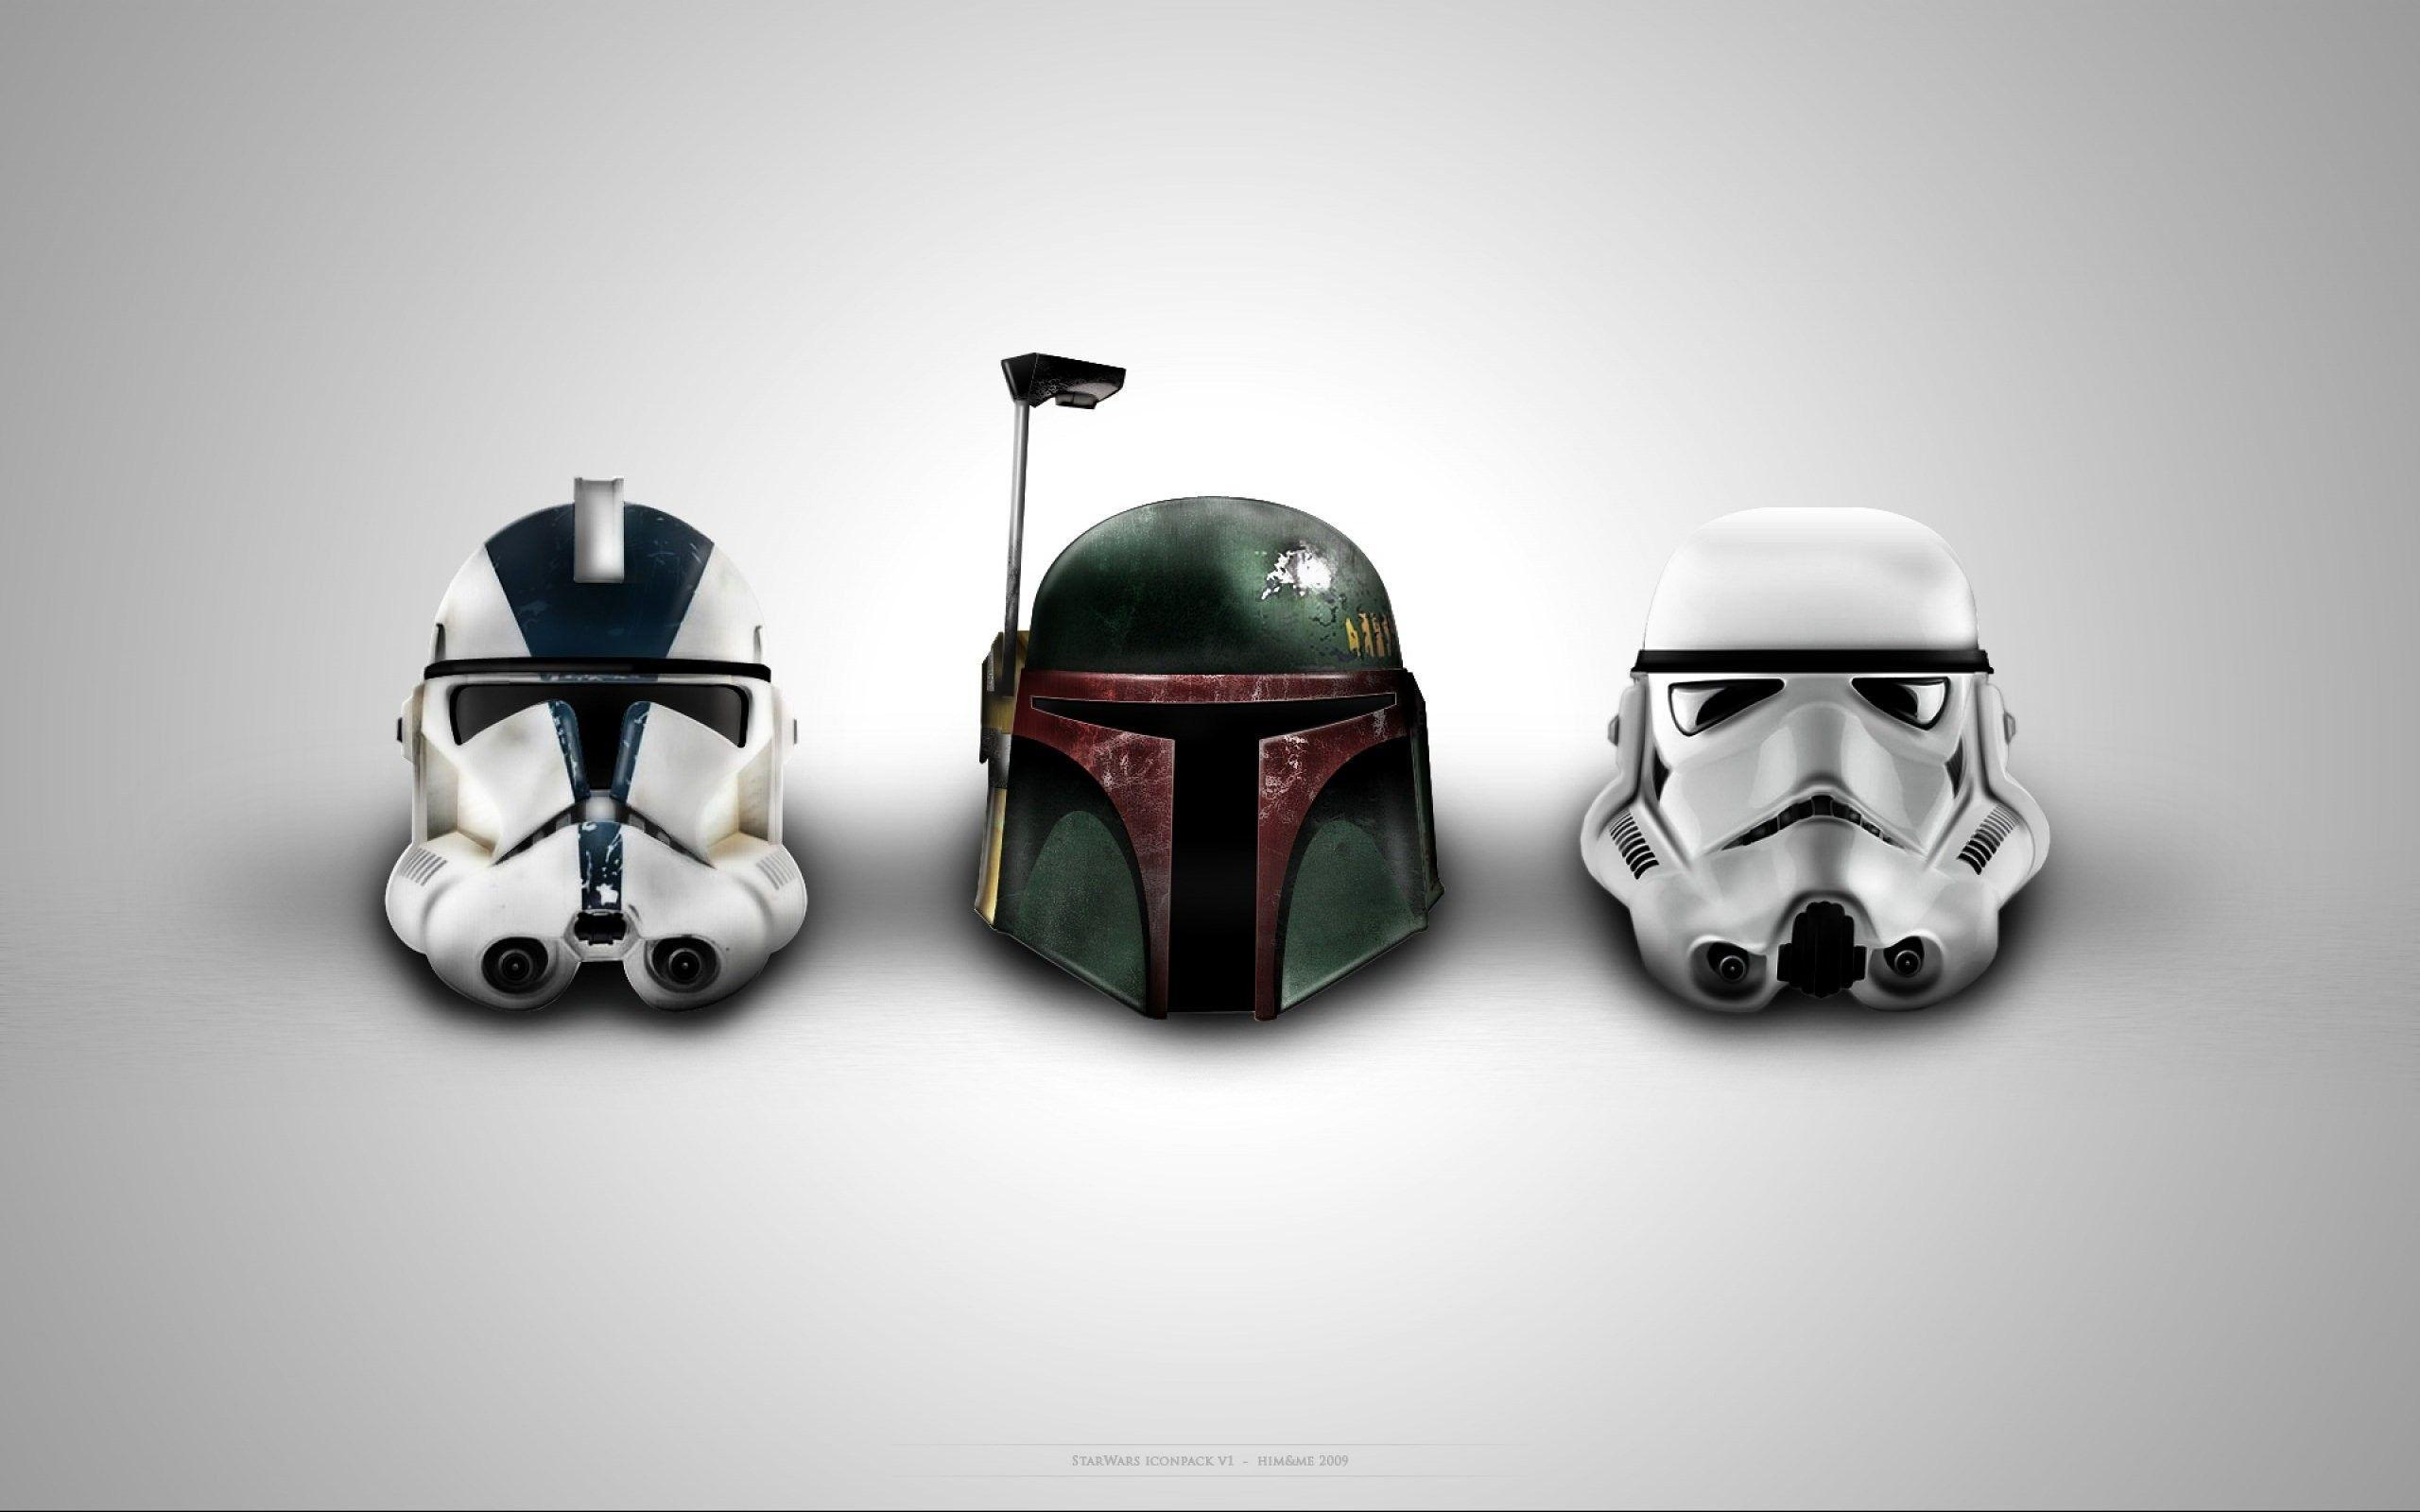 Stormtroopers Wallpapers, Stormtroopers Images 1920x1200 px ...